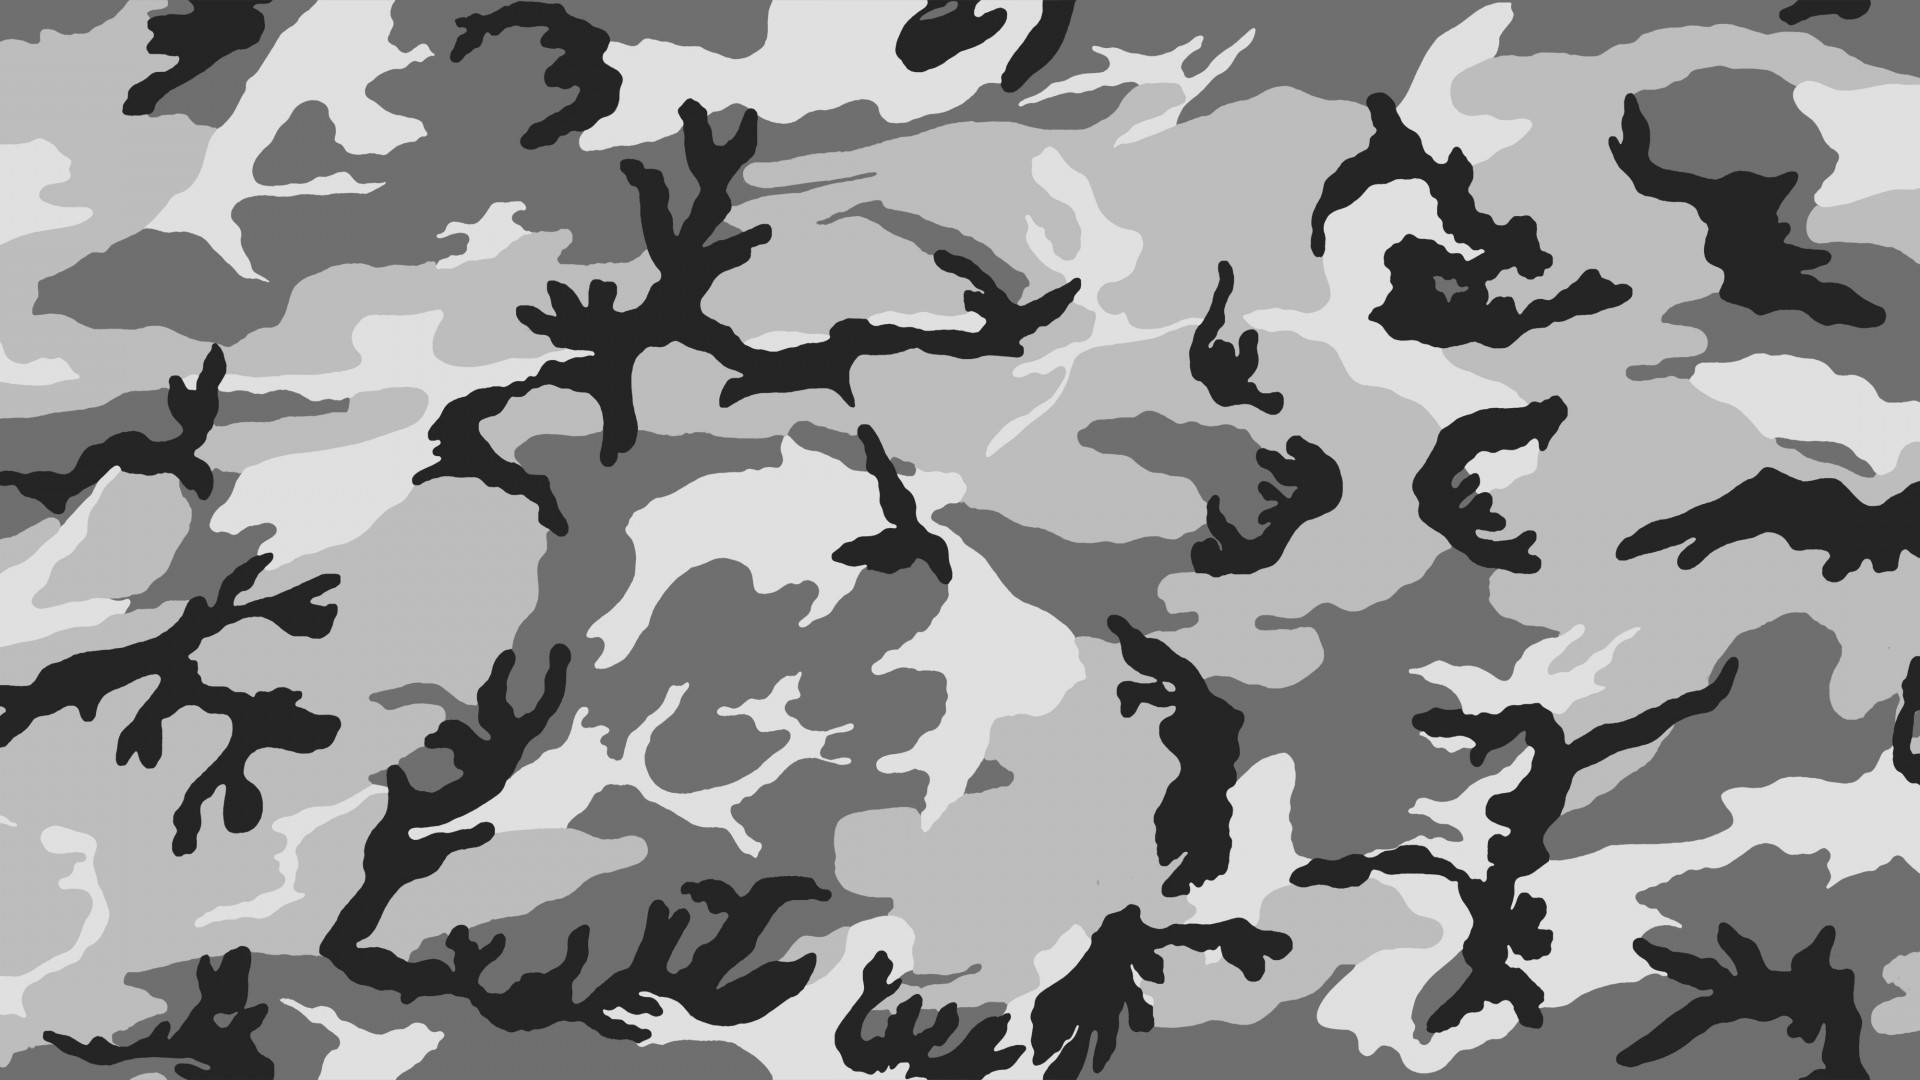 black-white-army-camo-wallpaper-full-hd | wallpaper.wiki